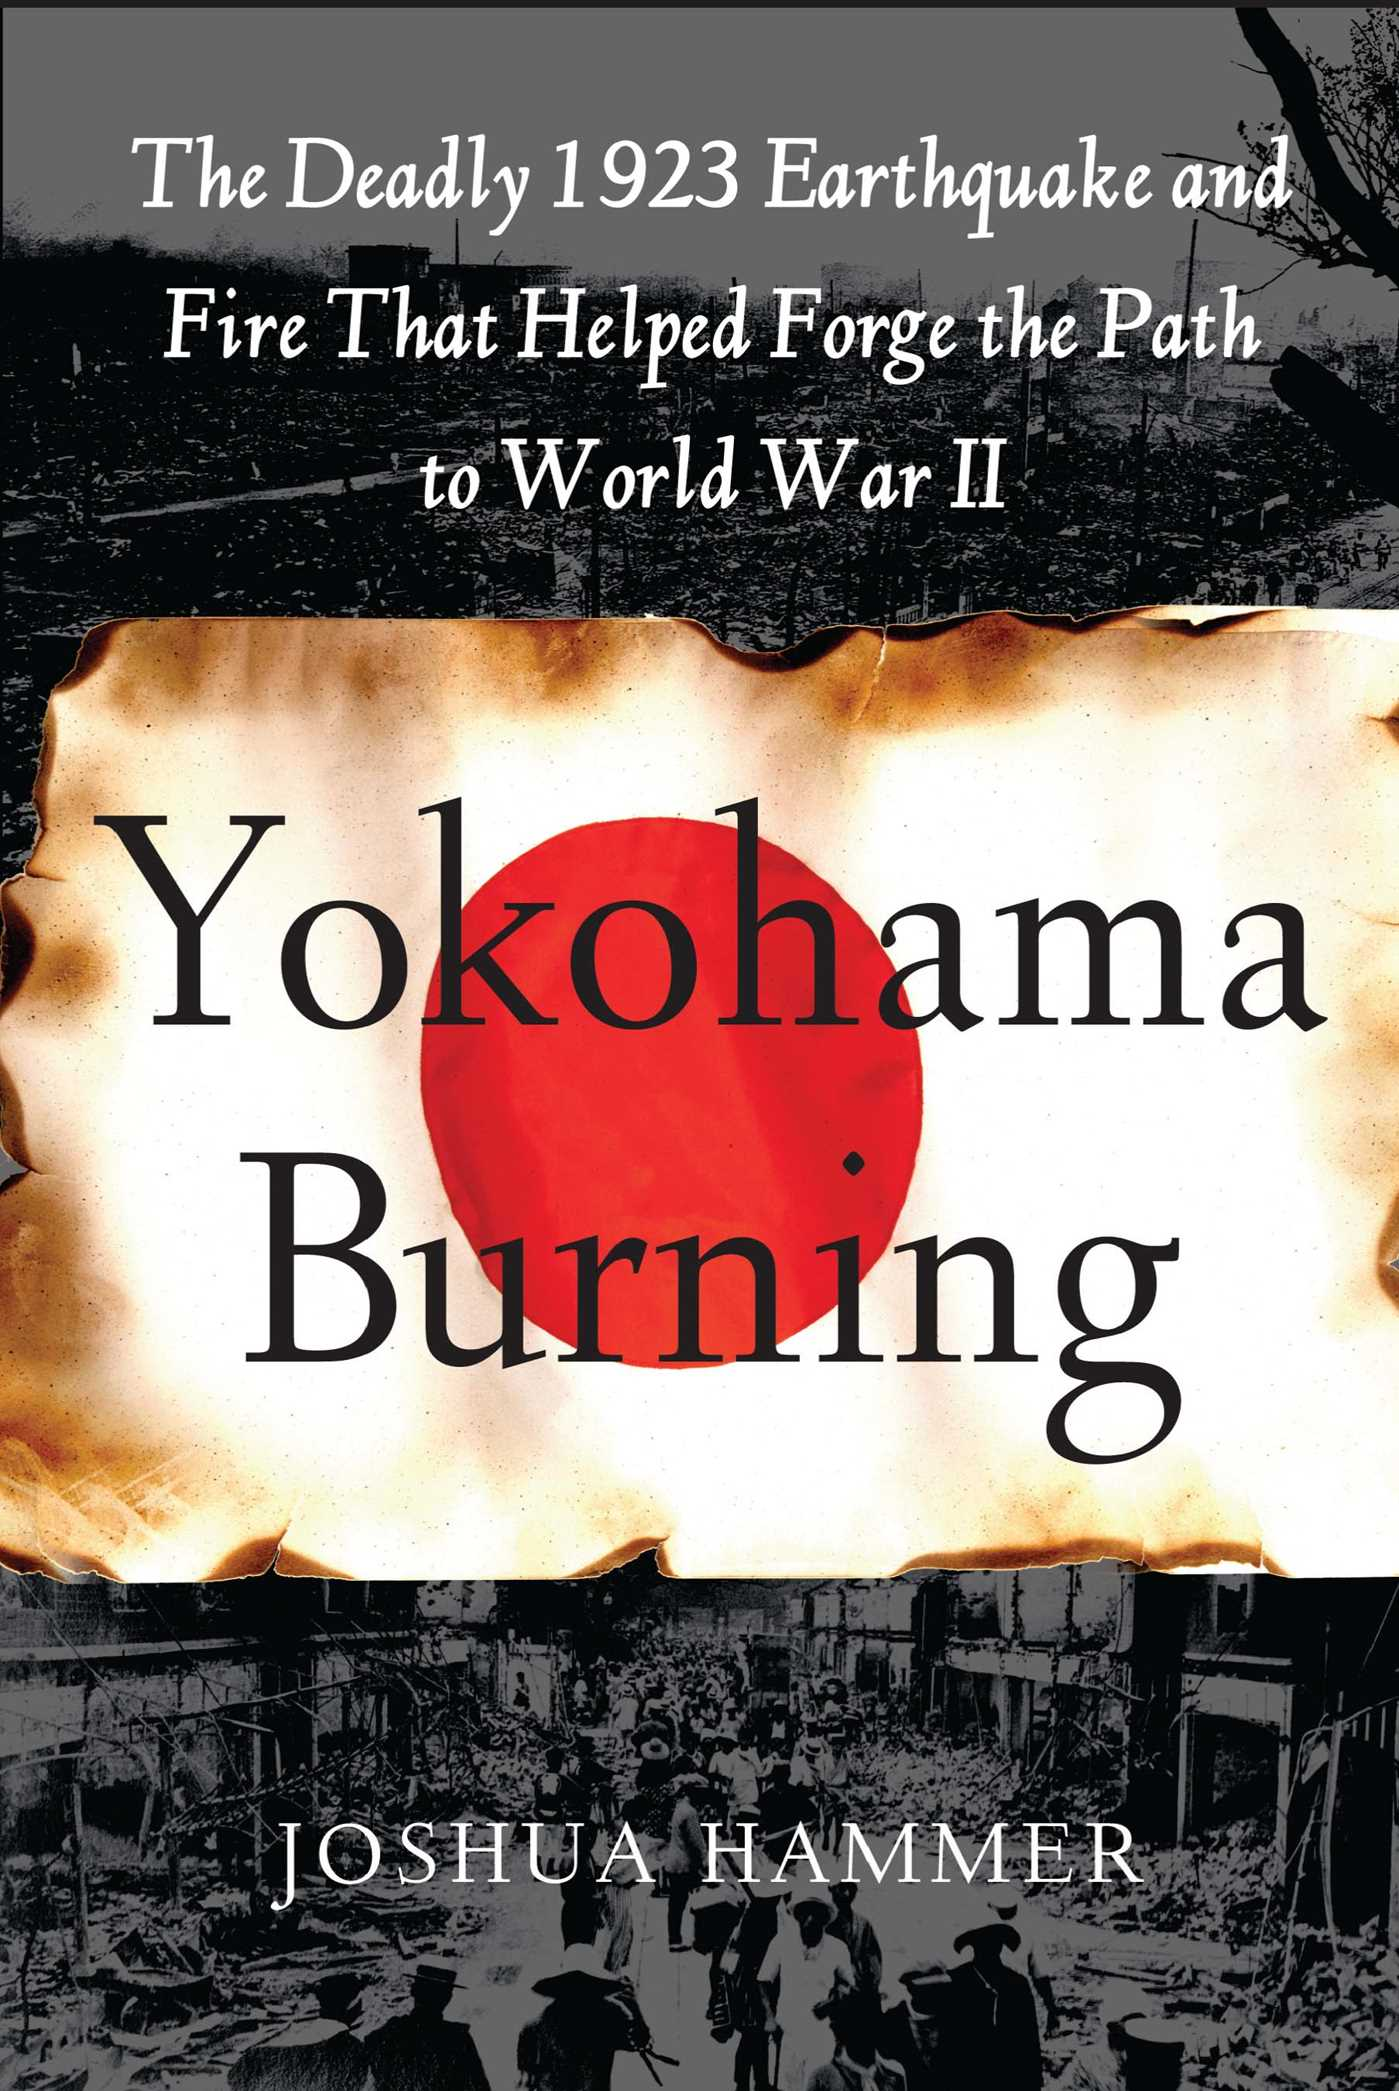 Yokohama burning 9780743264662 hr